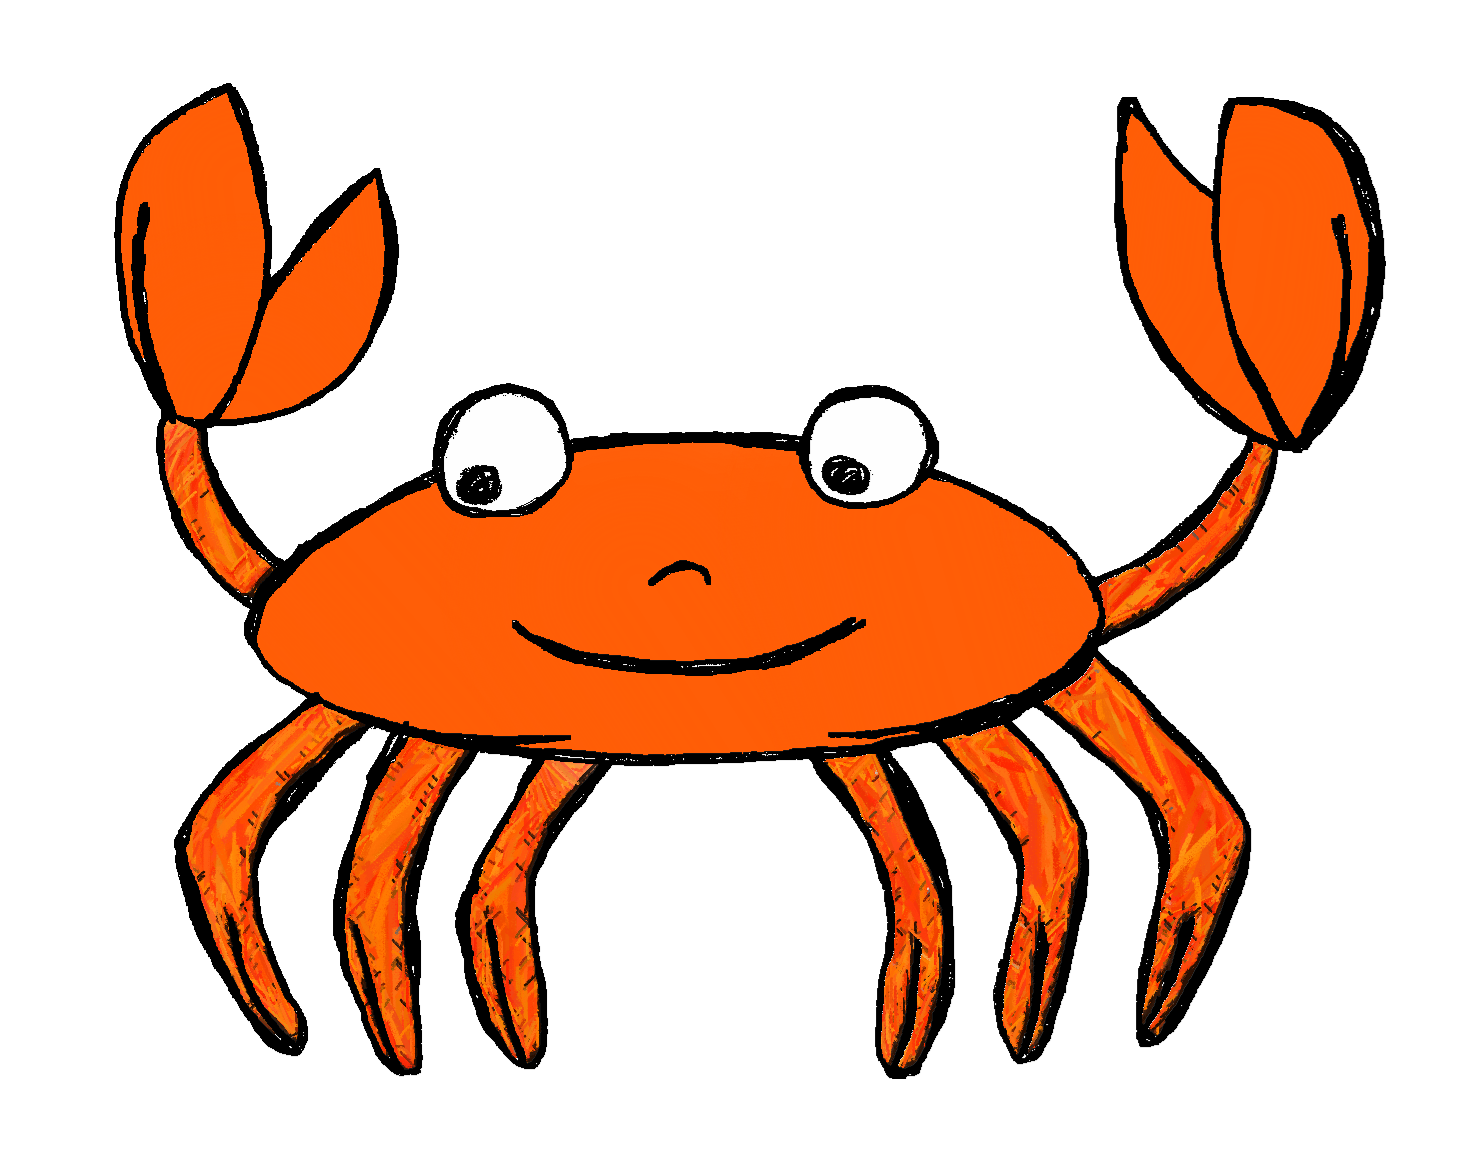 jpg royalty free Animal picture clipart. Crab black and white